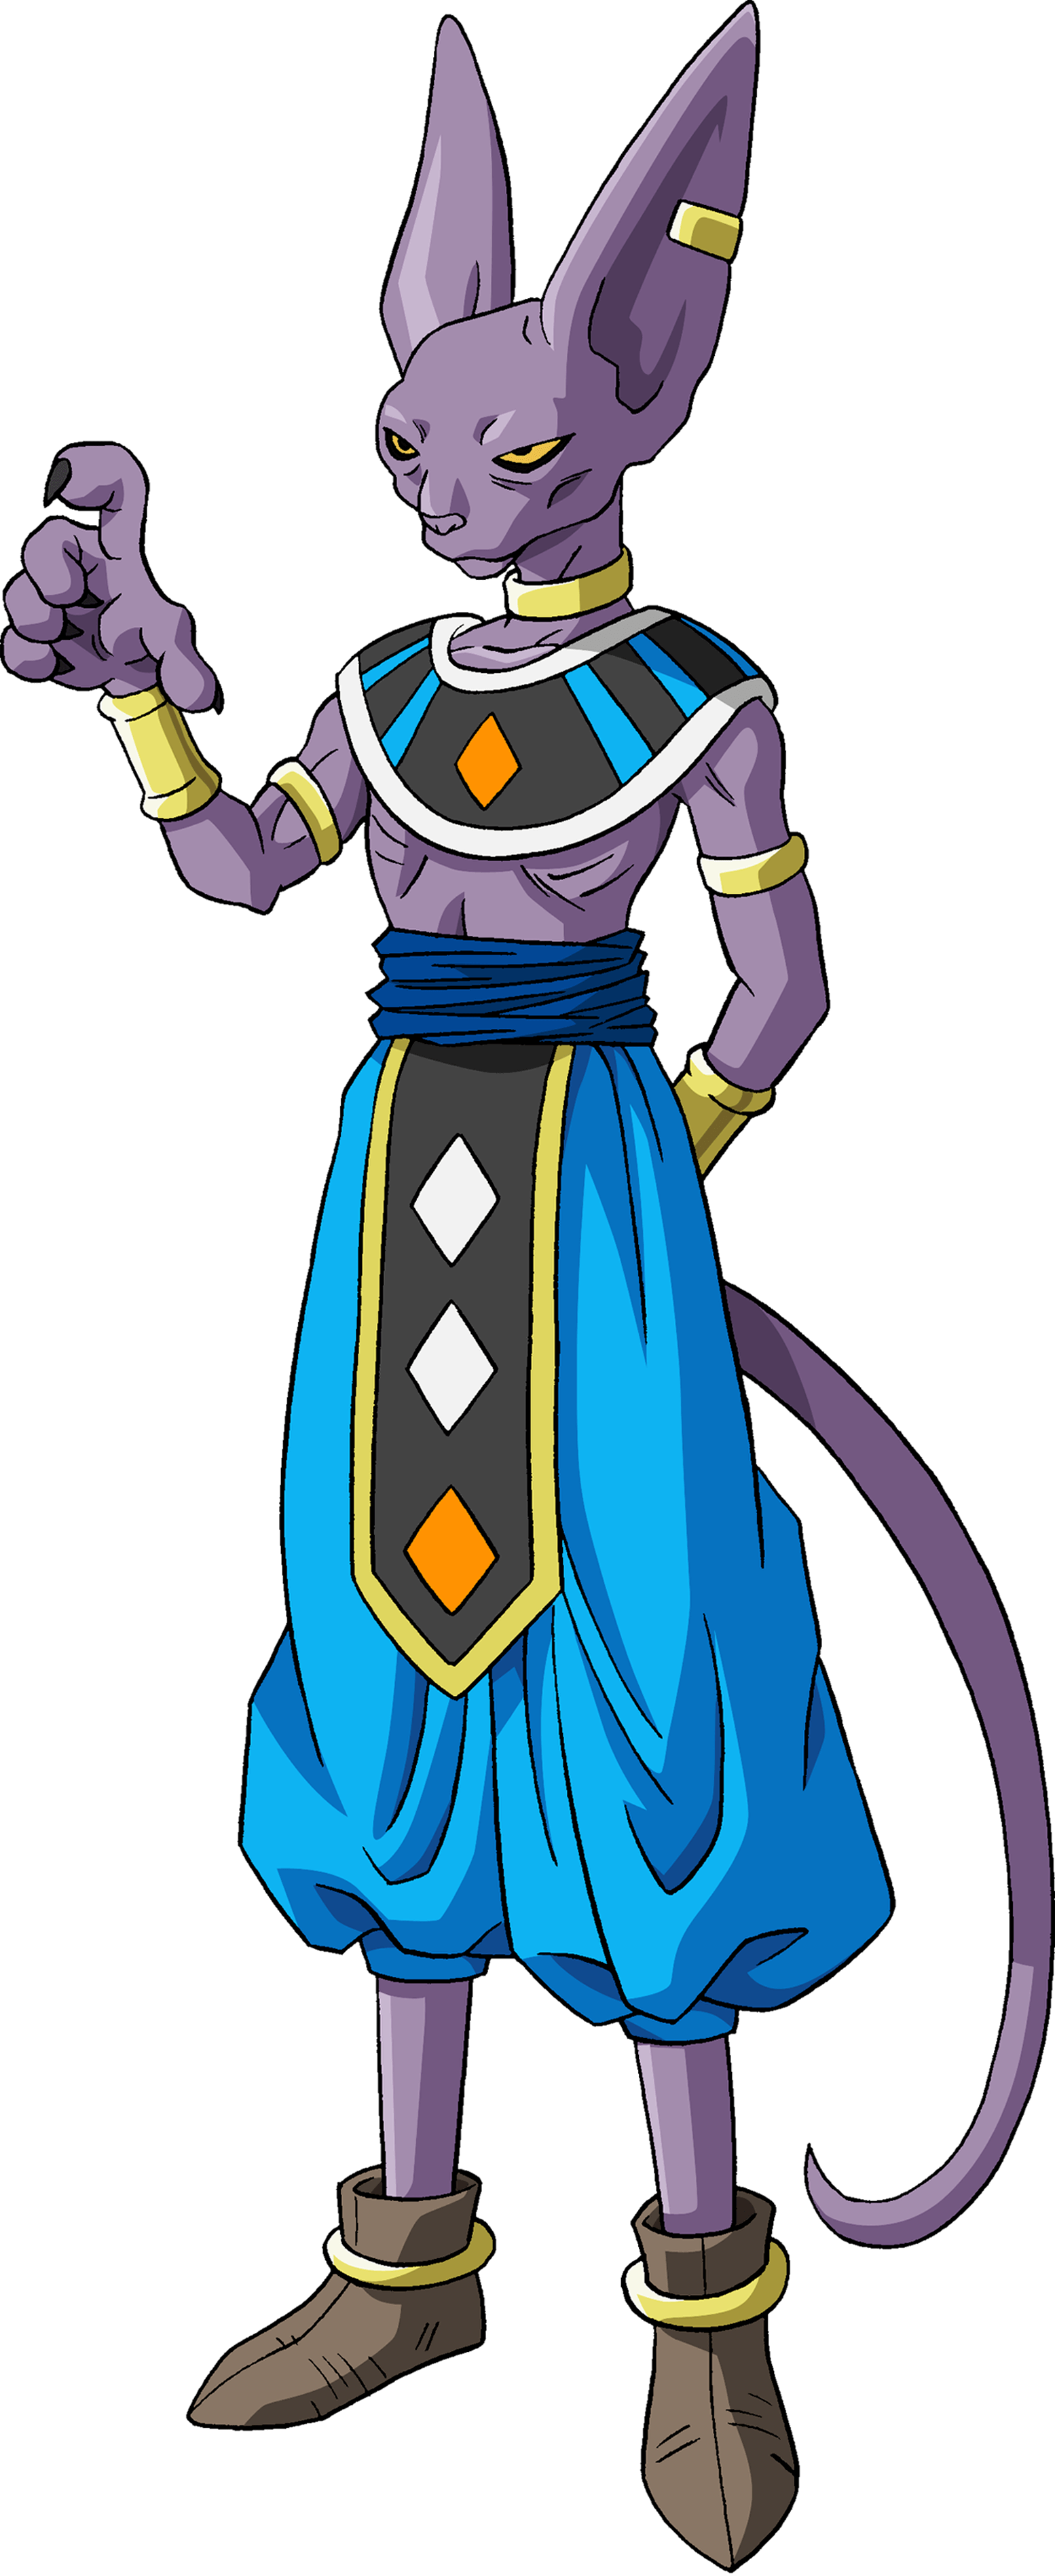 Dragon ball super png. Pack album on imgur